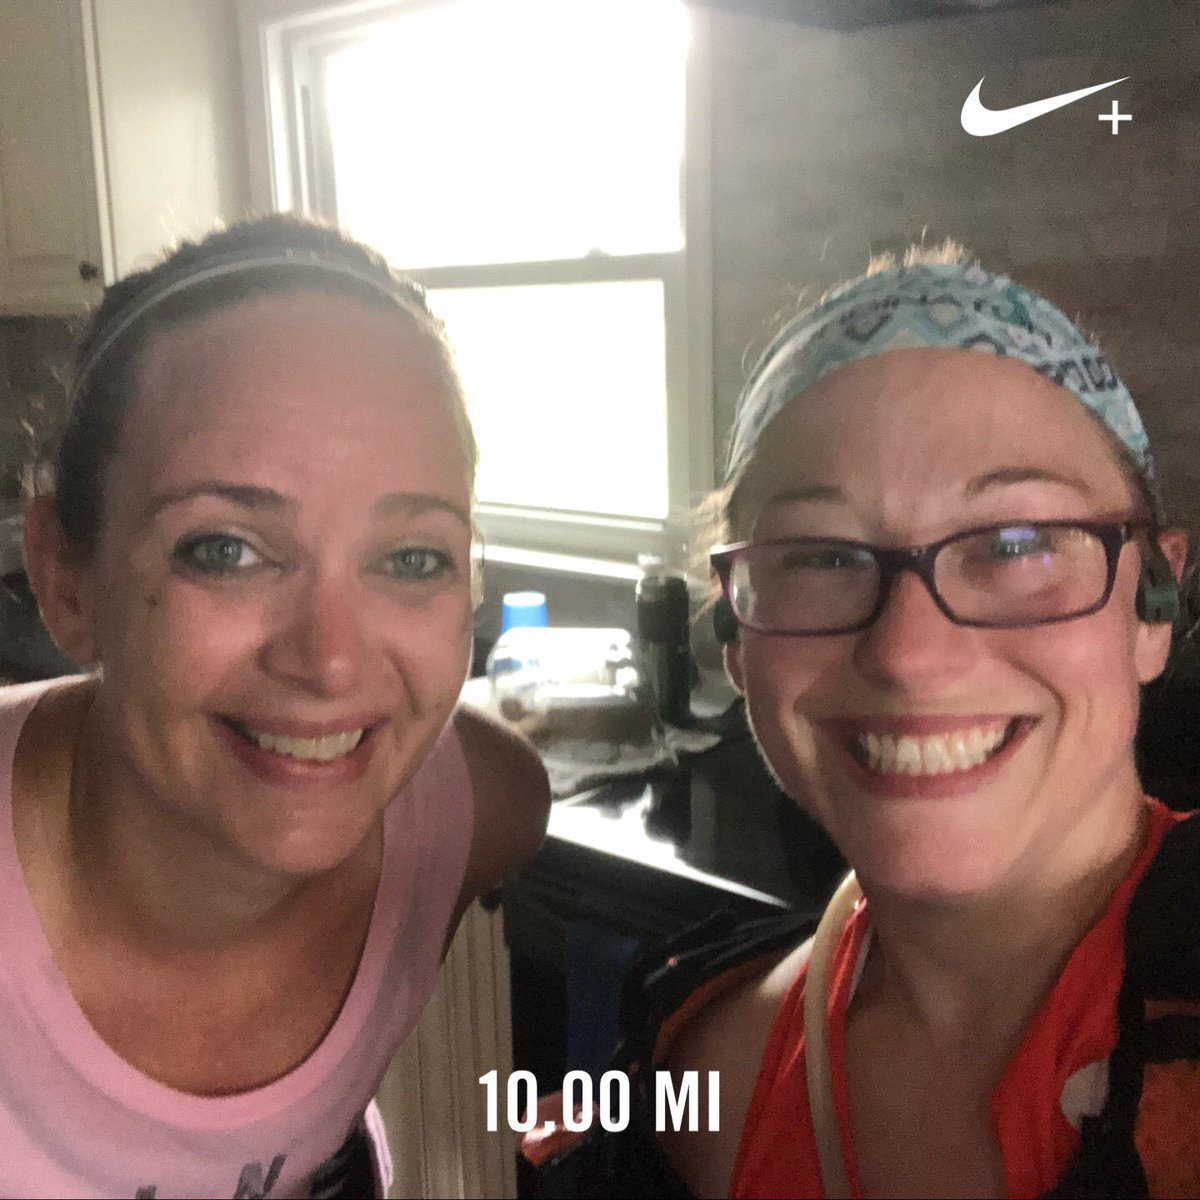 324/800 ~ 10 miles in SOUP with @jenntastic33 bright and early this morning at 6:30! I couldn't have done it without you! Thank you so much! #plowon #irun4shelby #irun4lucy #irun4johnya #irun4seb #irun4sarah #bamr #bibchat #bibravepro #oofos #orangemud #nuunambassador2019<br>http://pic.twitter.com/H5FNTtQDeO